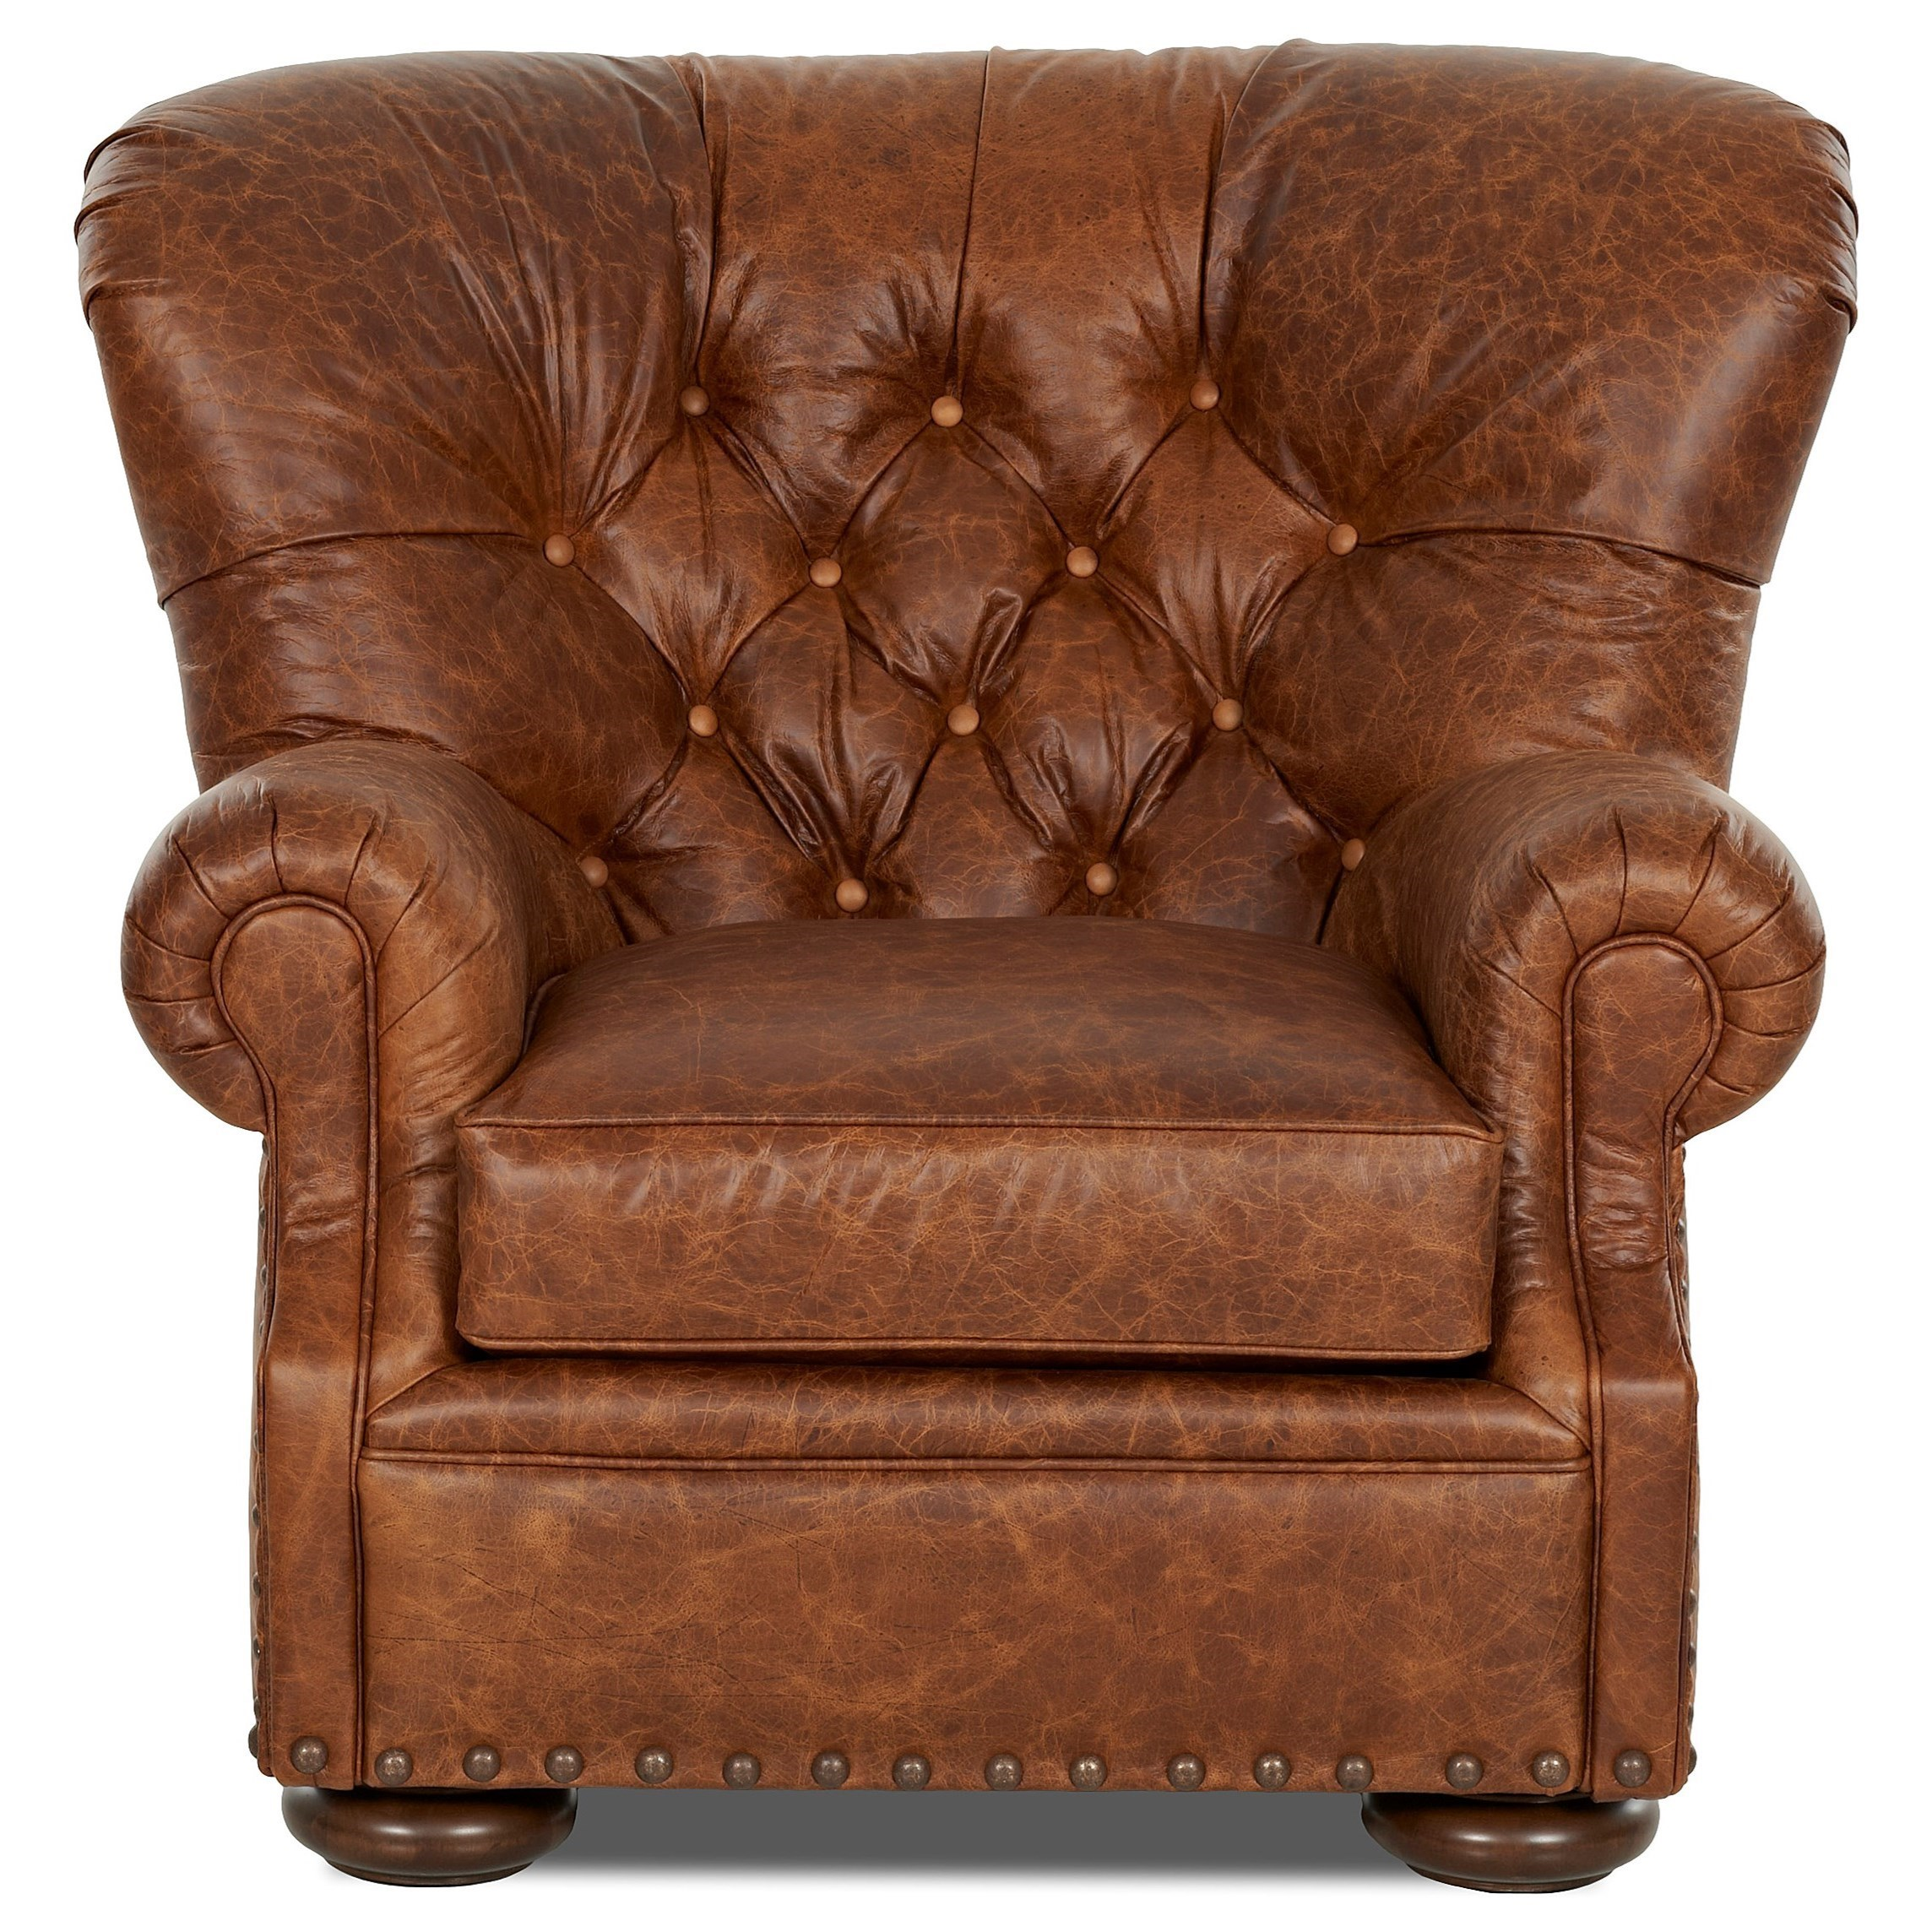 Klaussner Aspen Tufted Leather Chair And Ottoman Set Dunk